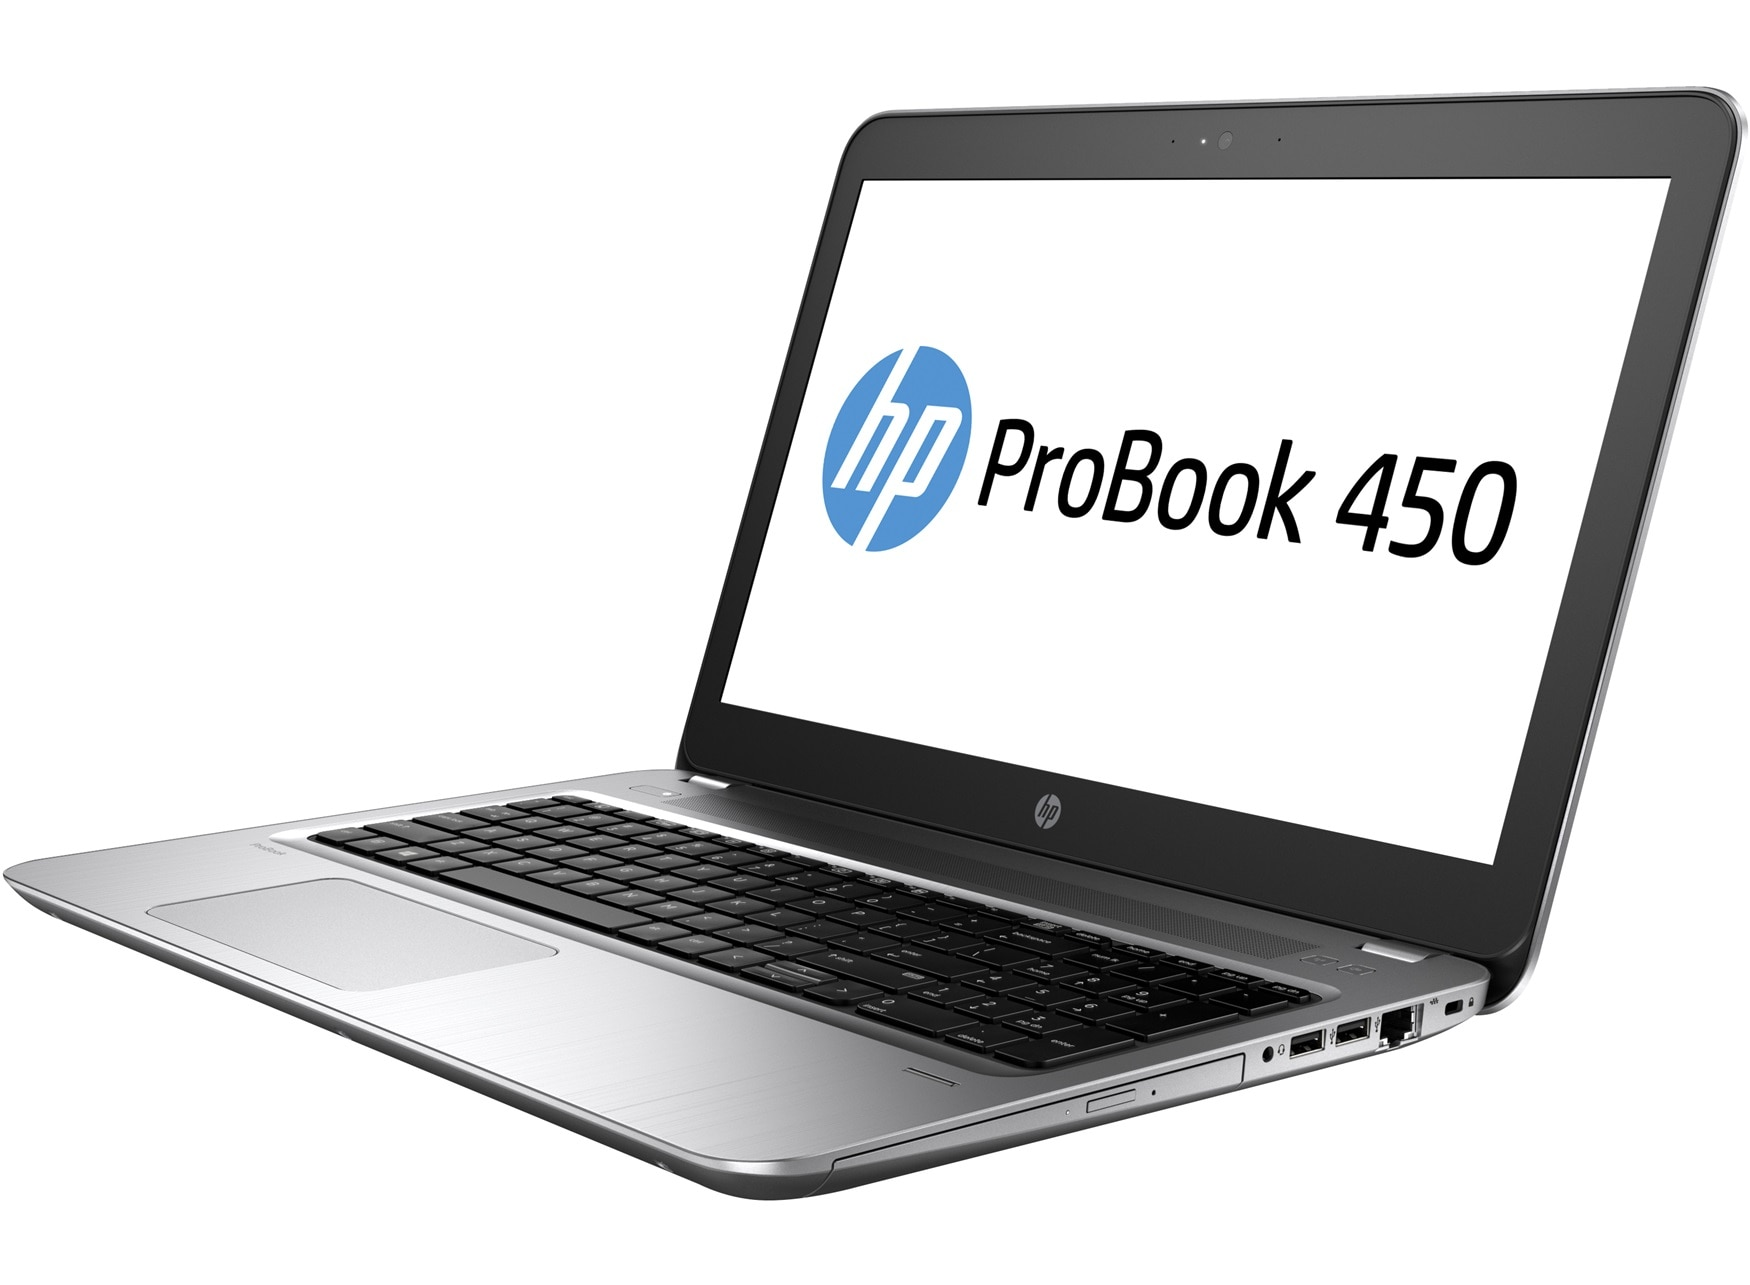 Hp Probook 450 G4 Hp Probook 450 G4 I3 15 6 Quot Hd Laptop With 500gb Hdd Hp